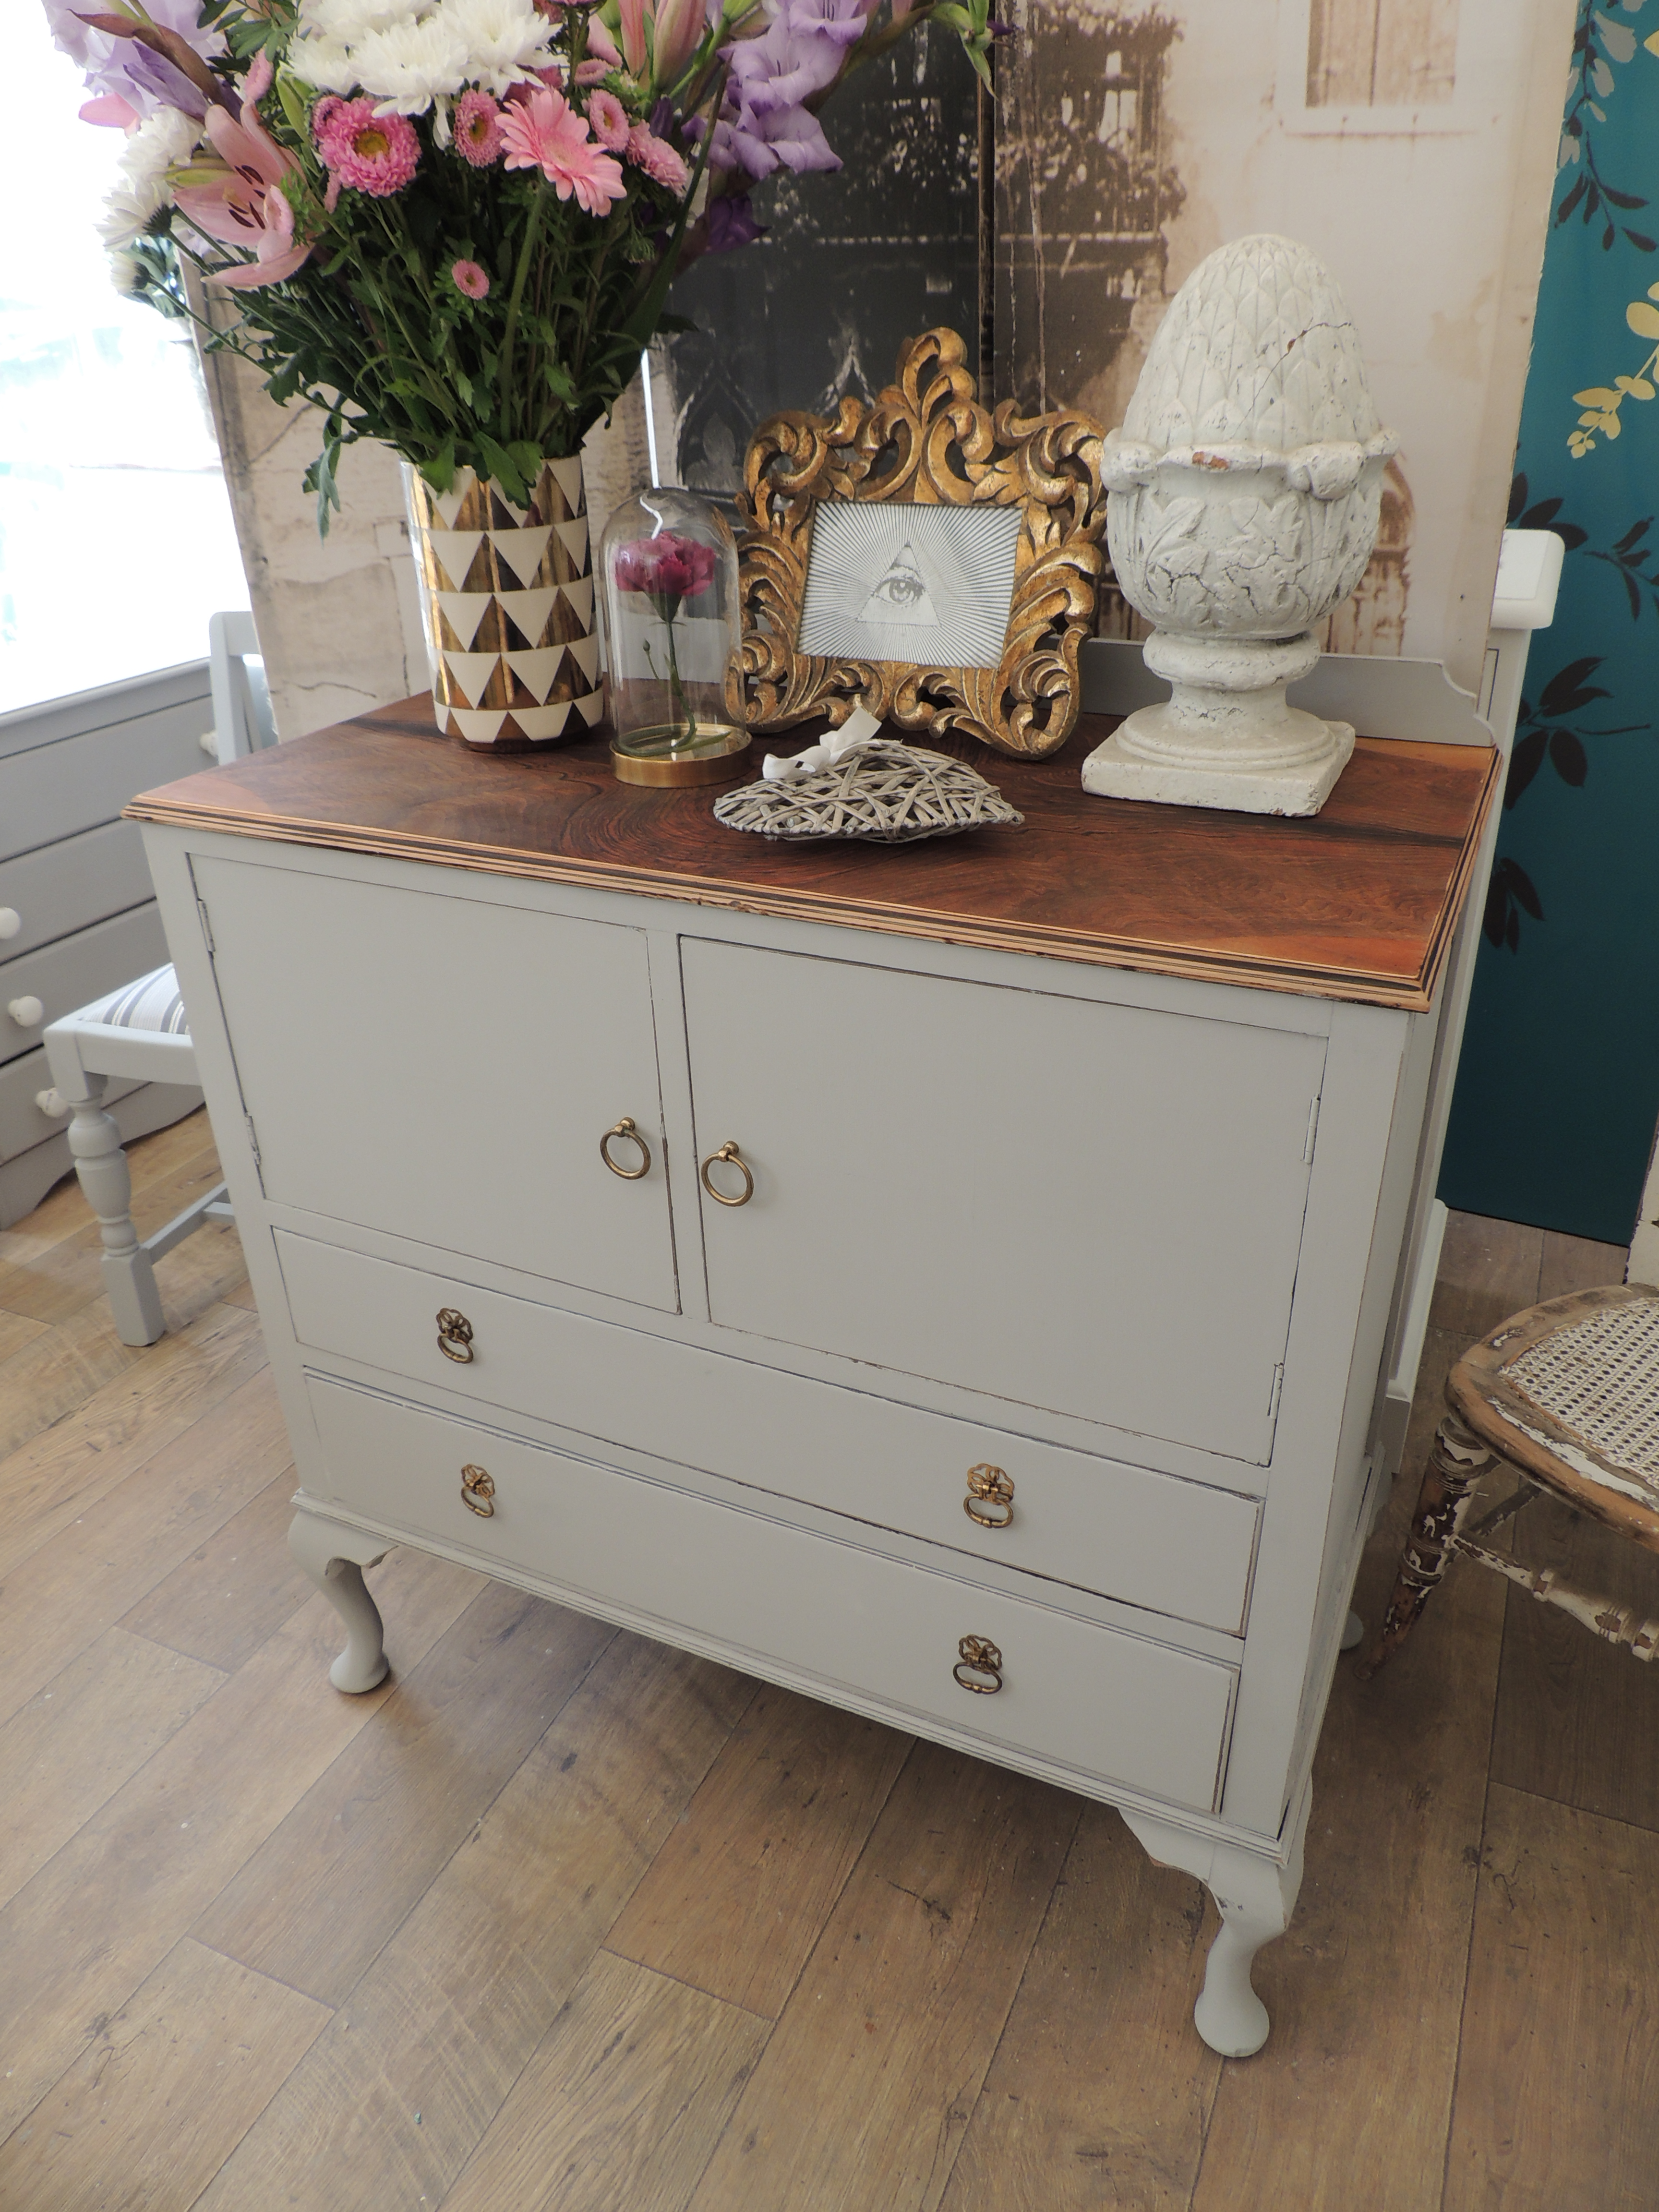 shabby chic french style wooden sideboard cabinet eclectivo london furniture with soul. Black Bedroom Furniture Sets. Home Design Ideas